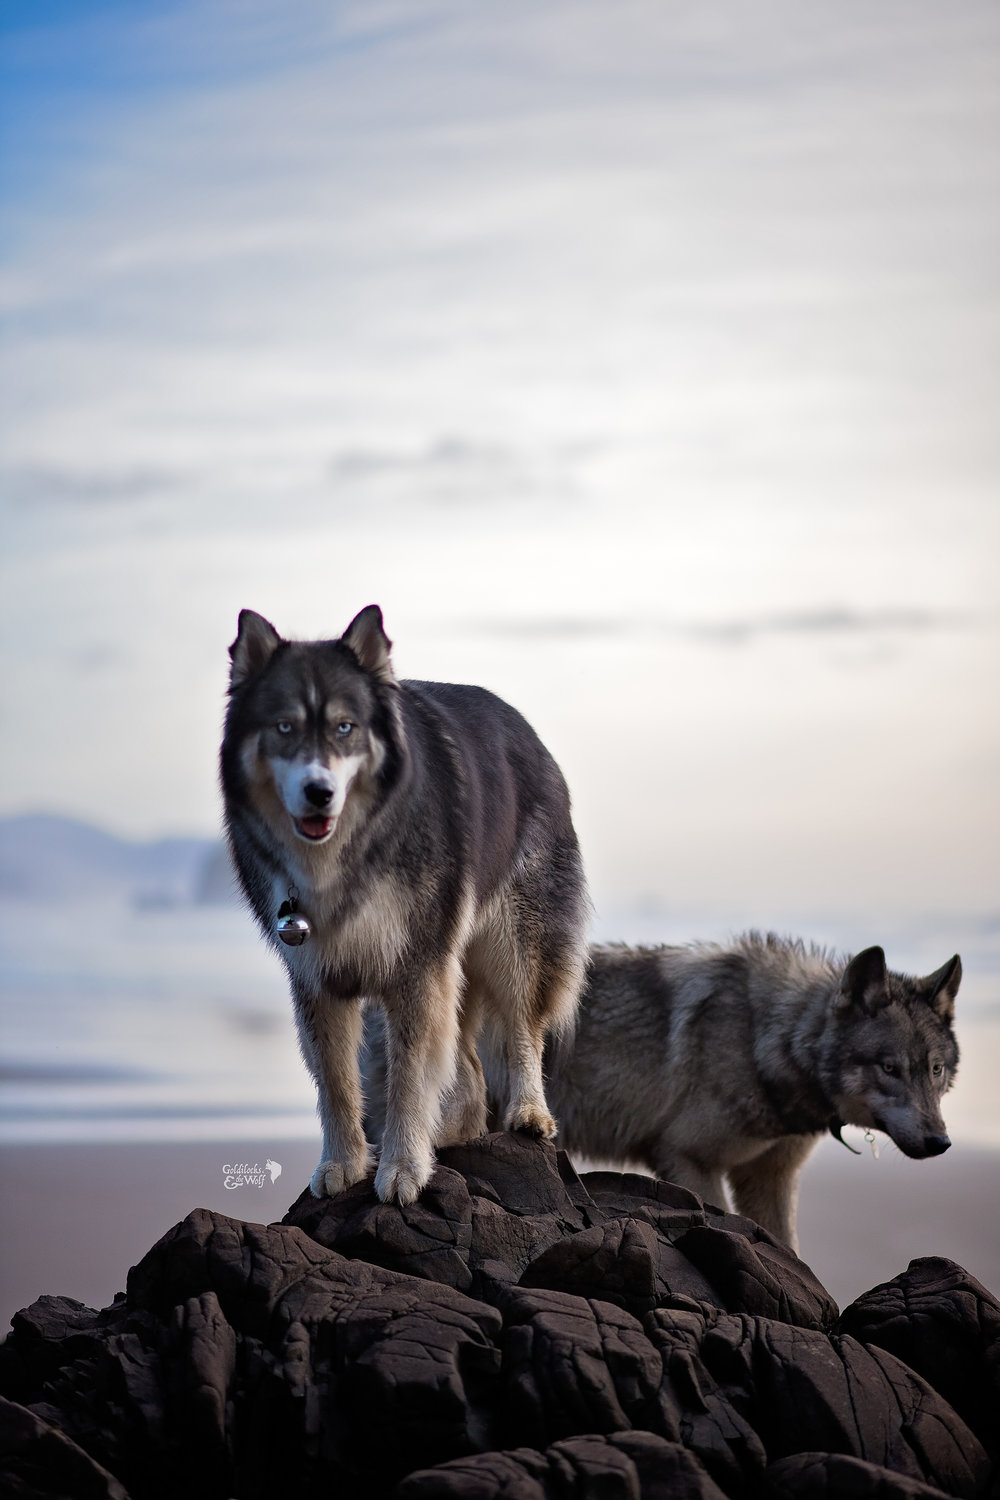 Kyro the husky and Ivar the Wolfdog